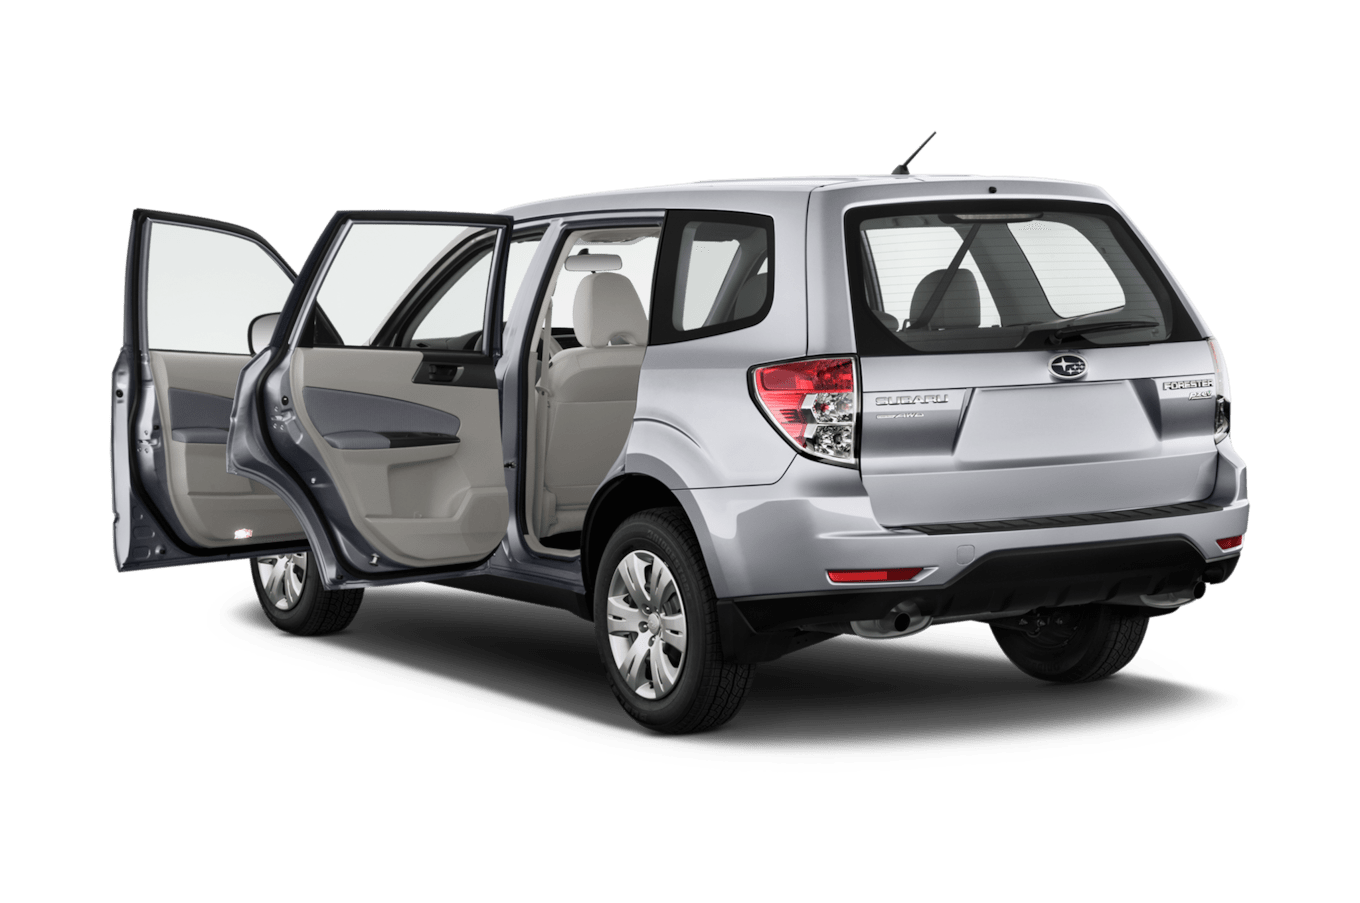 Compact Plus New Price 2012 Subaru Forester Reviews And Rating Motor Trend